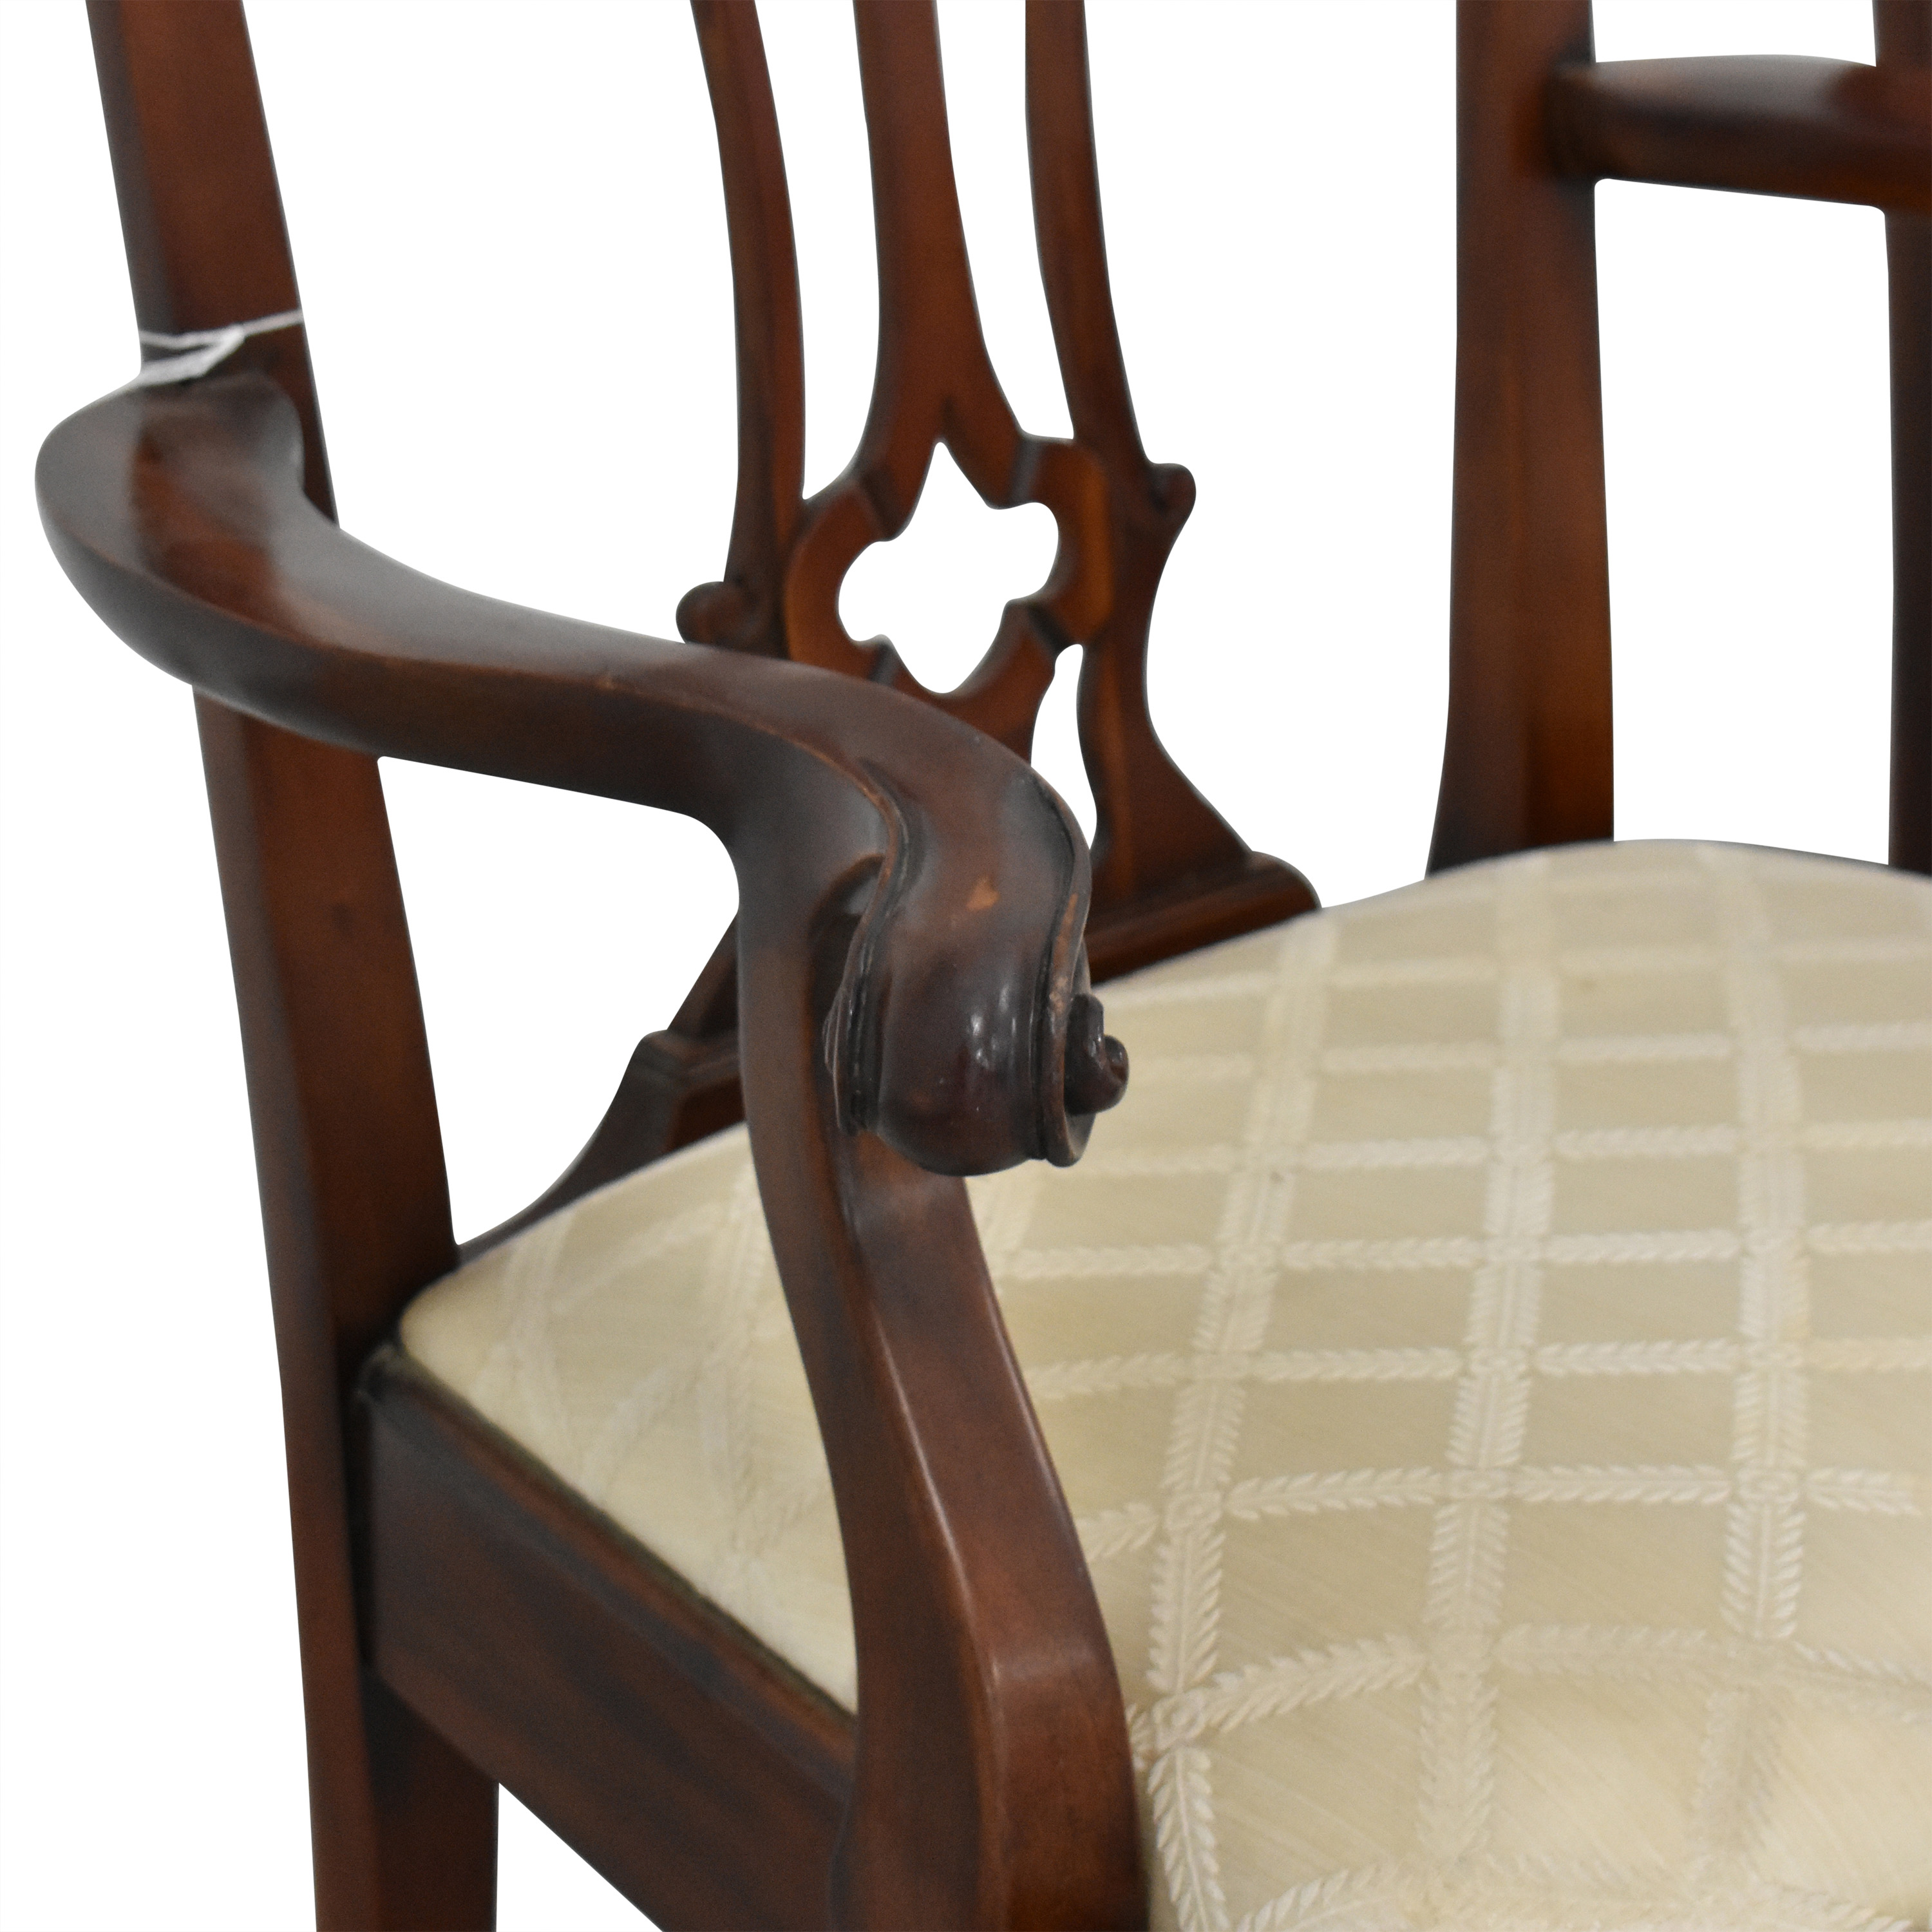 shop Maitland-Smith Connecticut Dining Chairs Maitland-Smith Dining Chairs